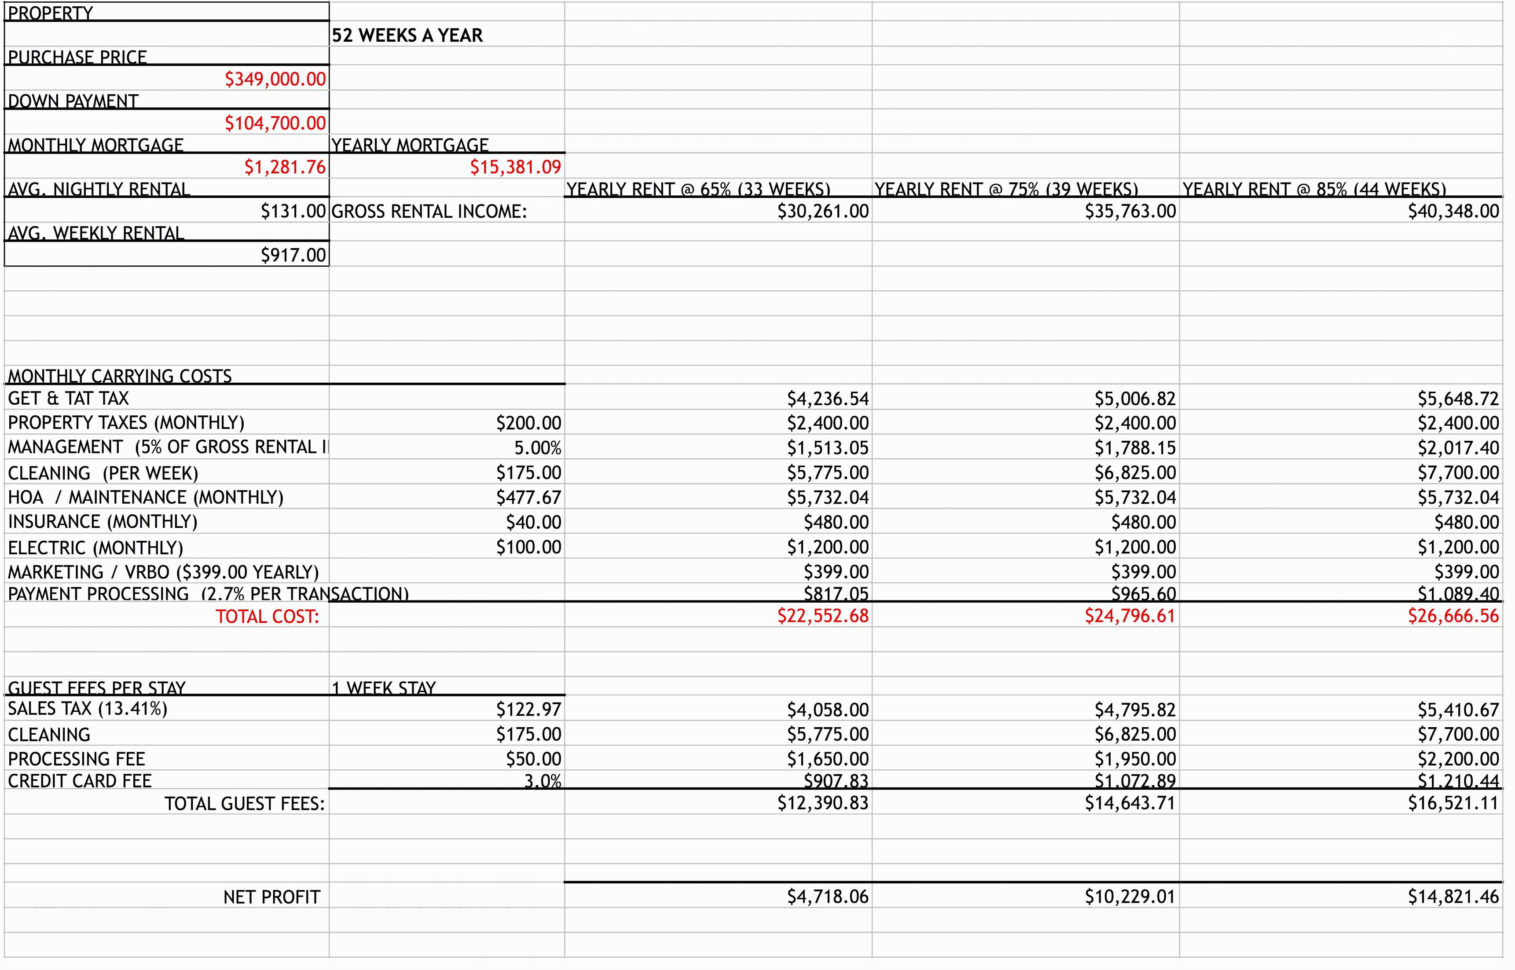 Real Estate Expenses Spreadsheet Intended For Real Estate Agent Expenses Spreadsheet Lovely Real Estate Agent